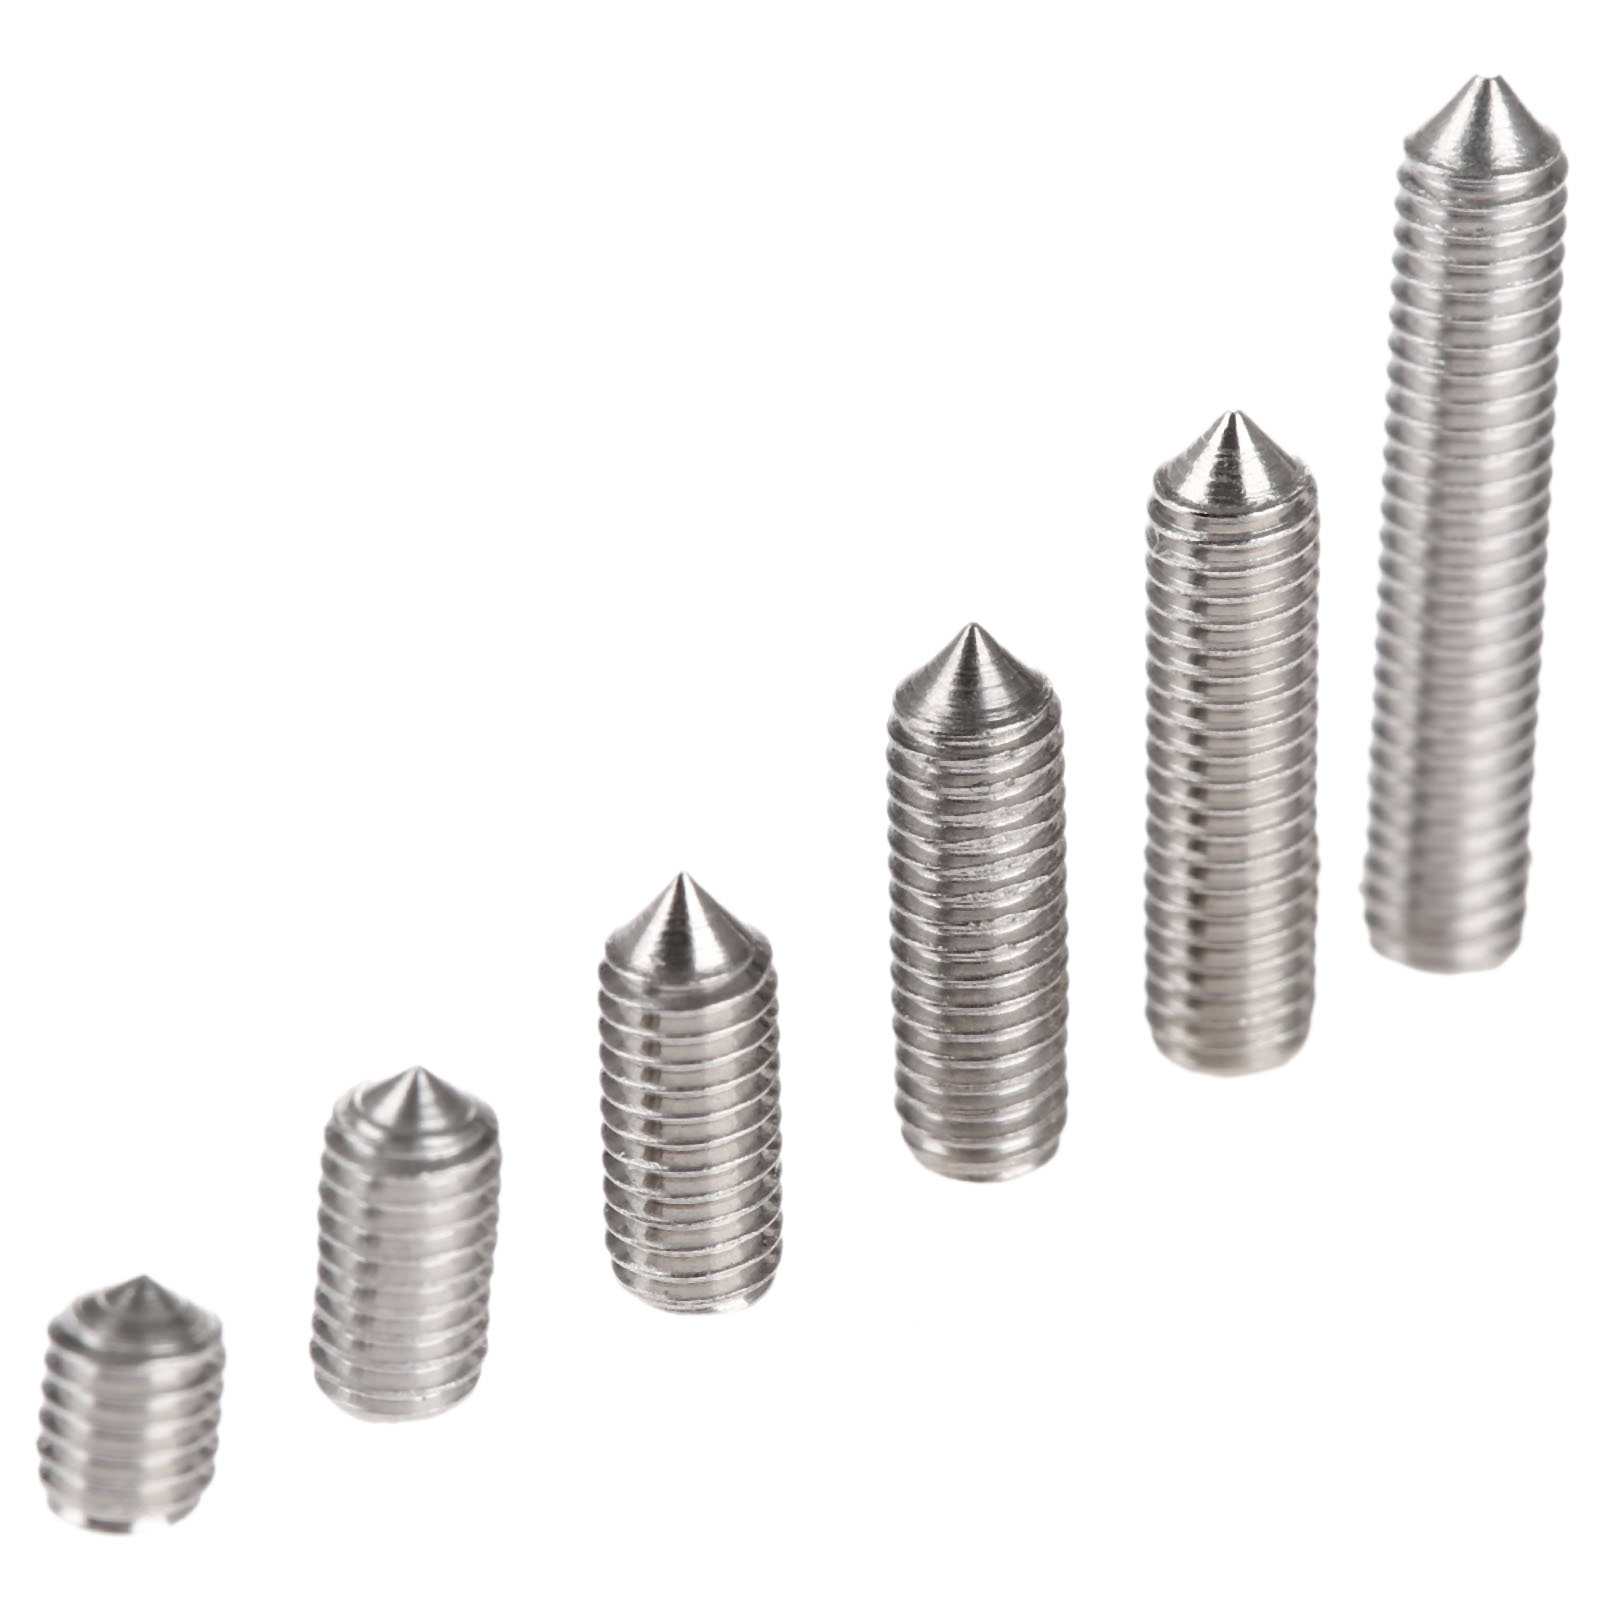 50Pcs M3 Stainless Steel Allen Head Hex Socket Grub Screw Bolts <font><b>Nuts</b></font> Fasteners with Cone Point M3 Screws M3 x4/6/8/10/<font><b>12</b></font>/16mm image